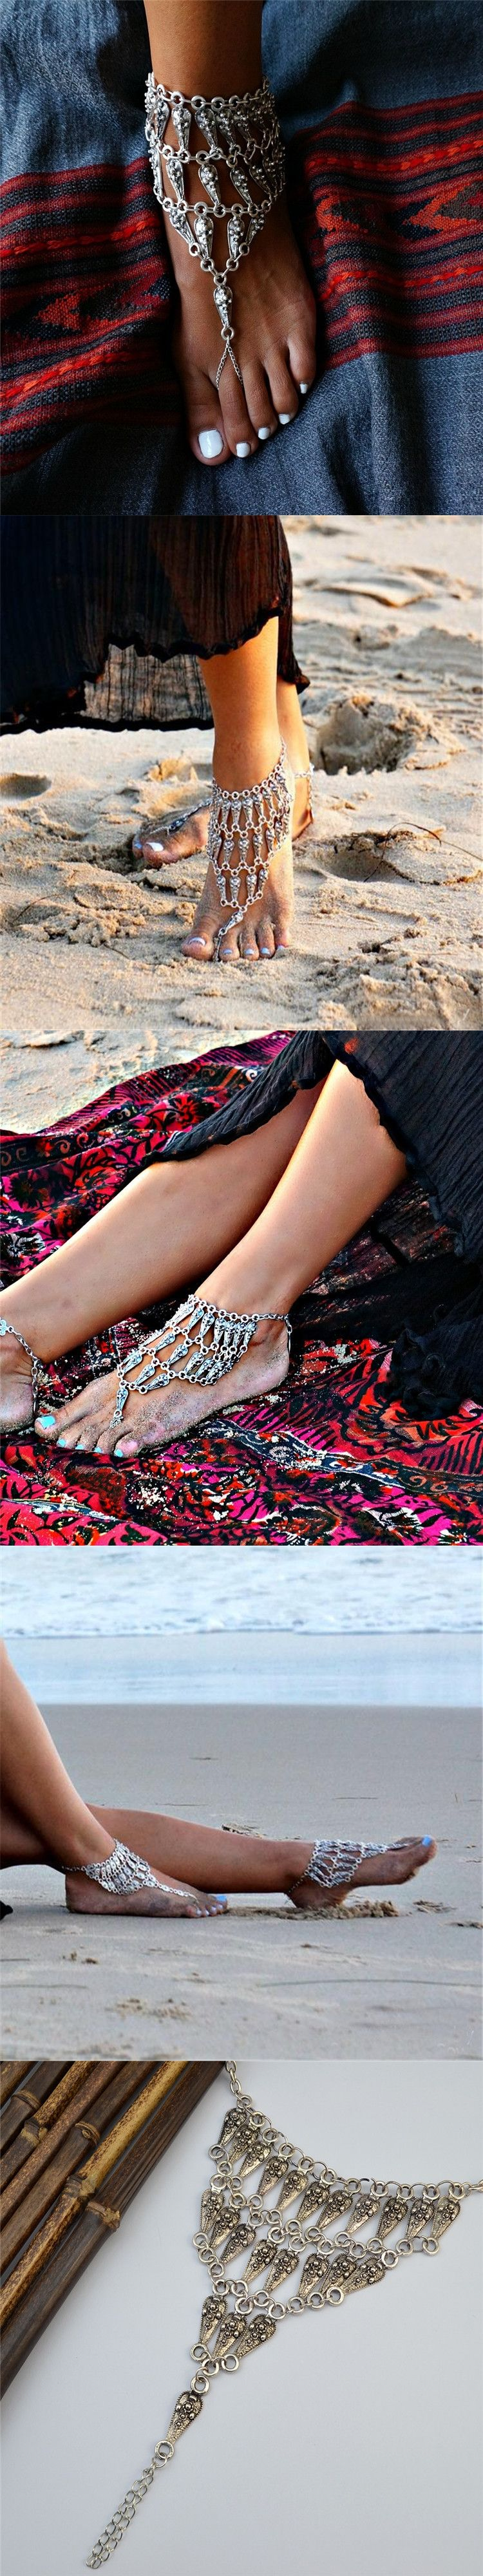 sexy starry foot national item from rune gift shipping jewelry yoga free chains in o accessories double female on beach retro anklets anklet pendant accessory